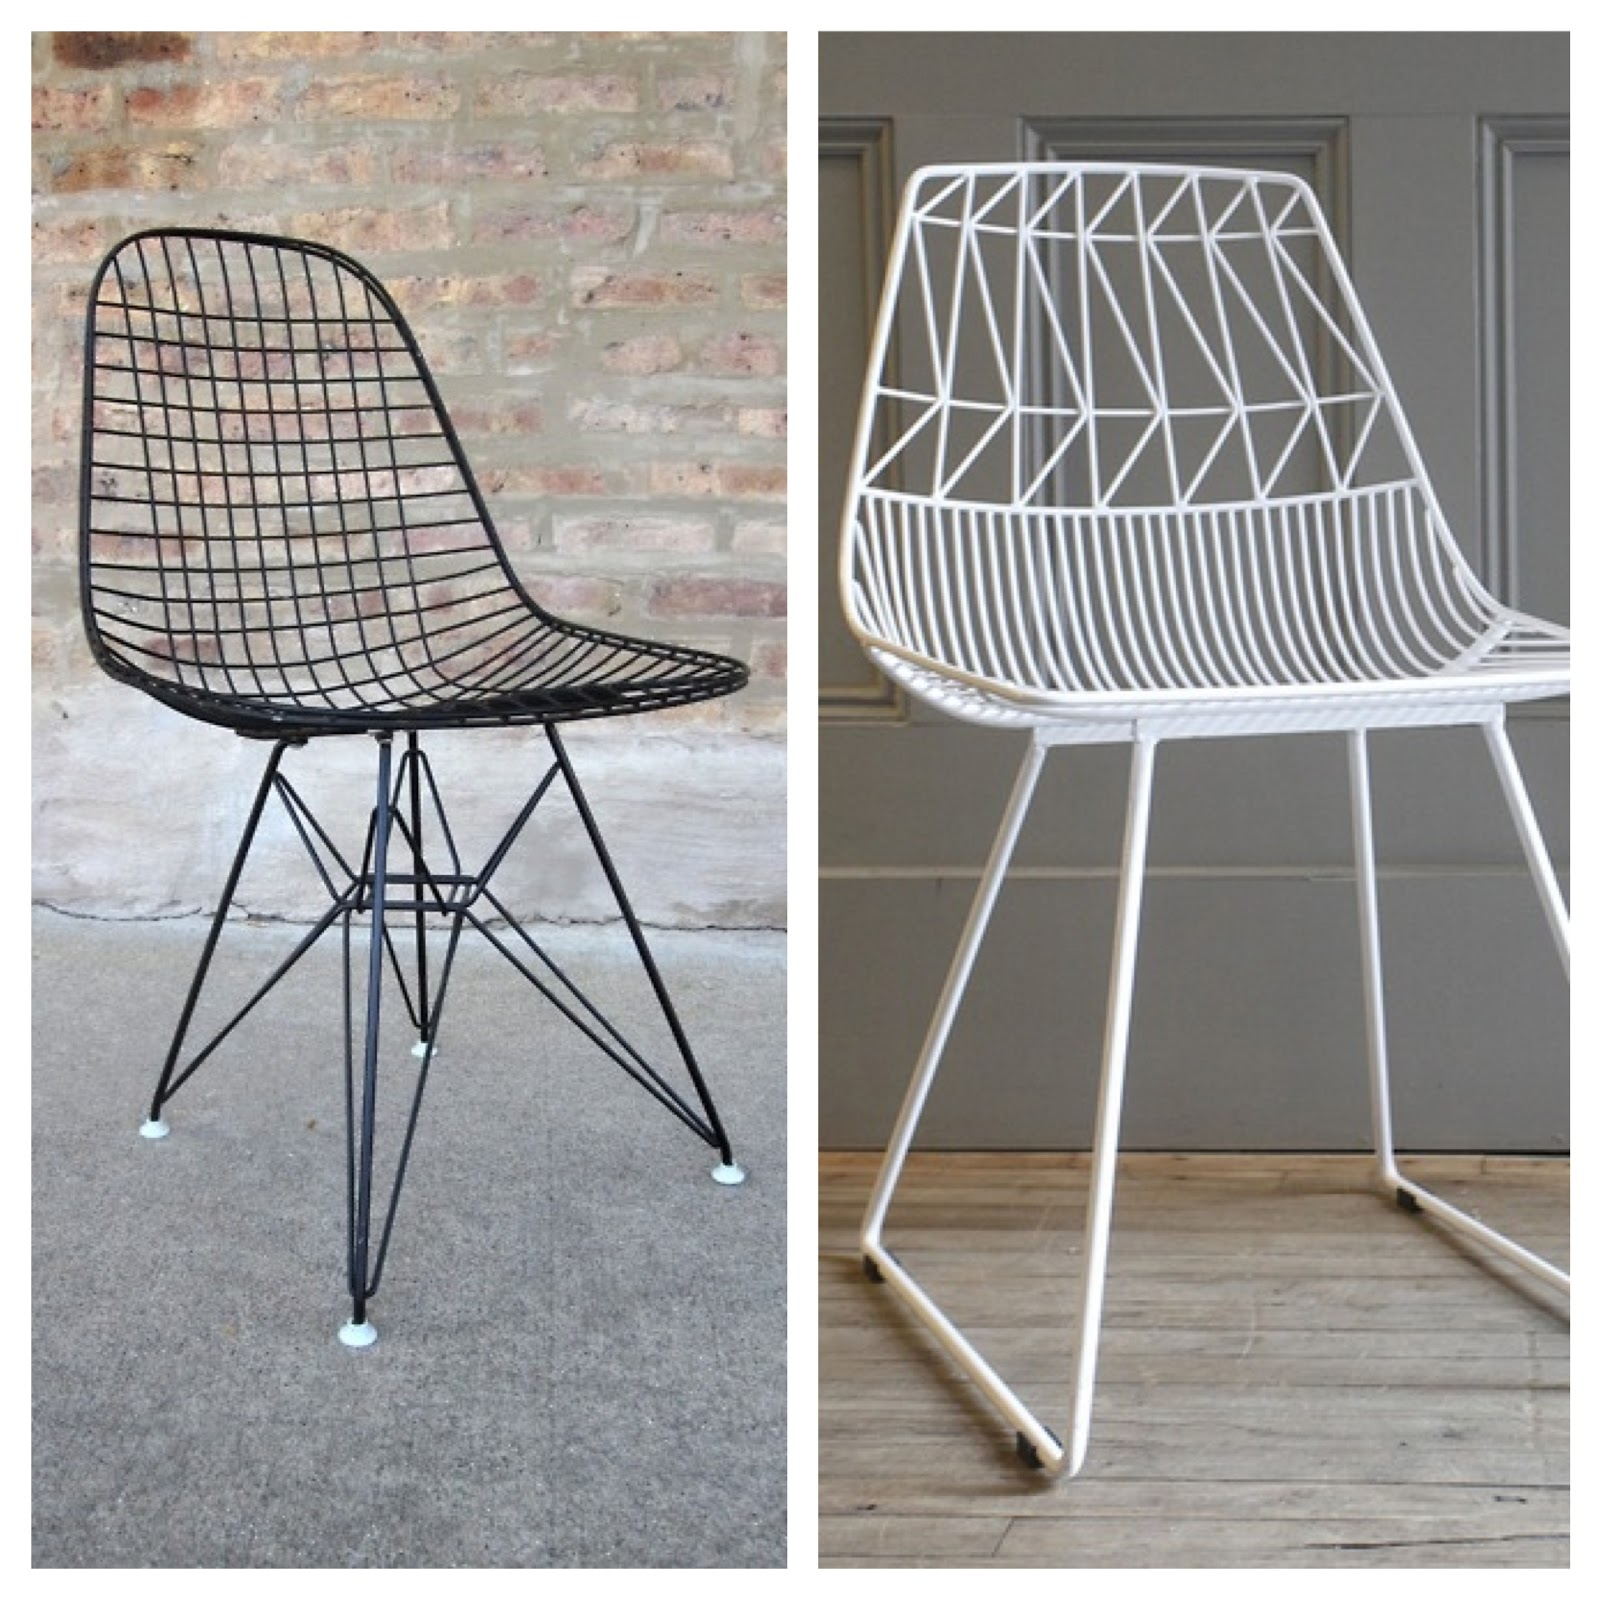 Chair wire chairs missing cover - Examples Of Classic And New Wire Designs Left Eames Wire Chair And White Wire Chair By Michele Varian